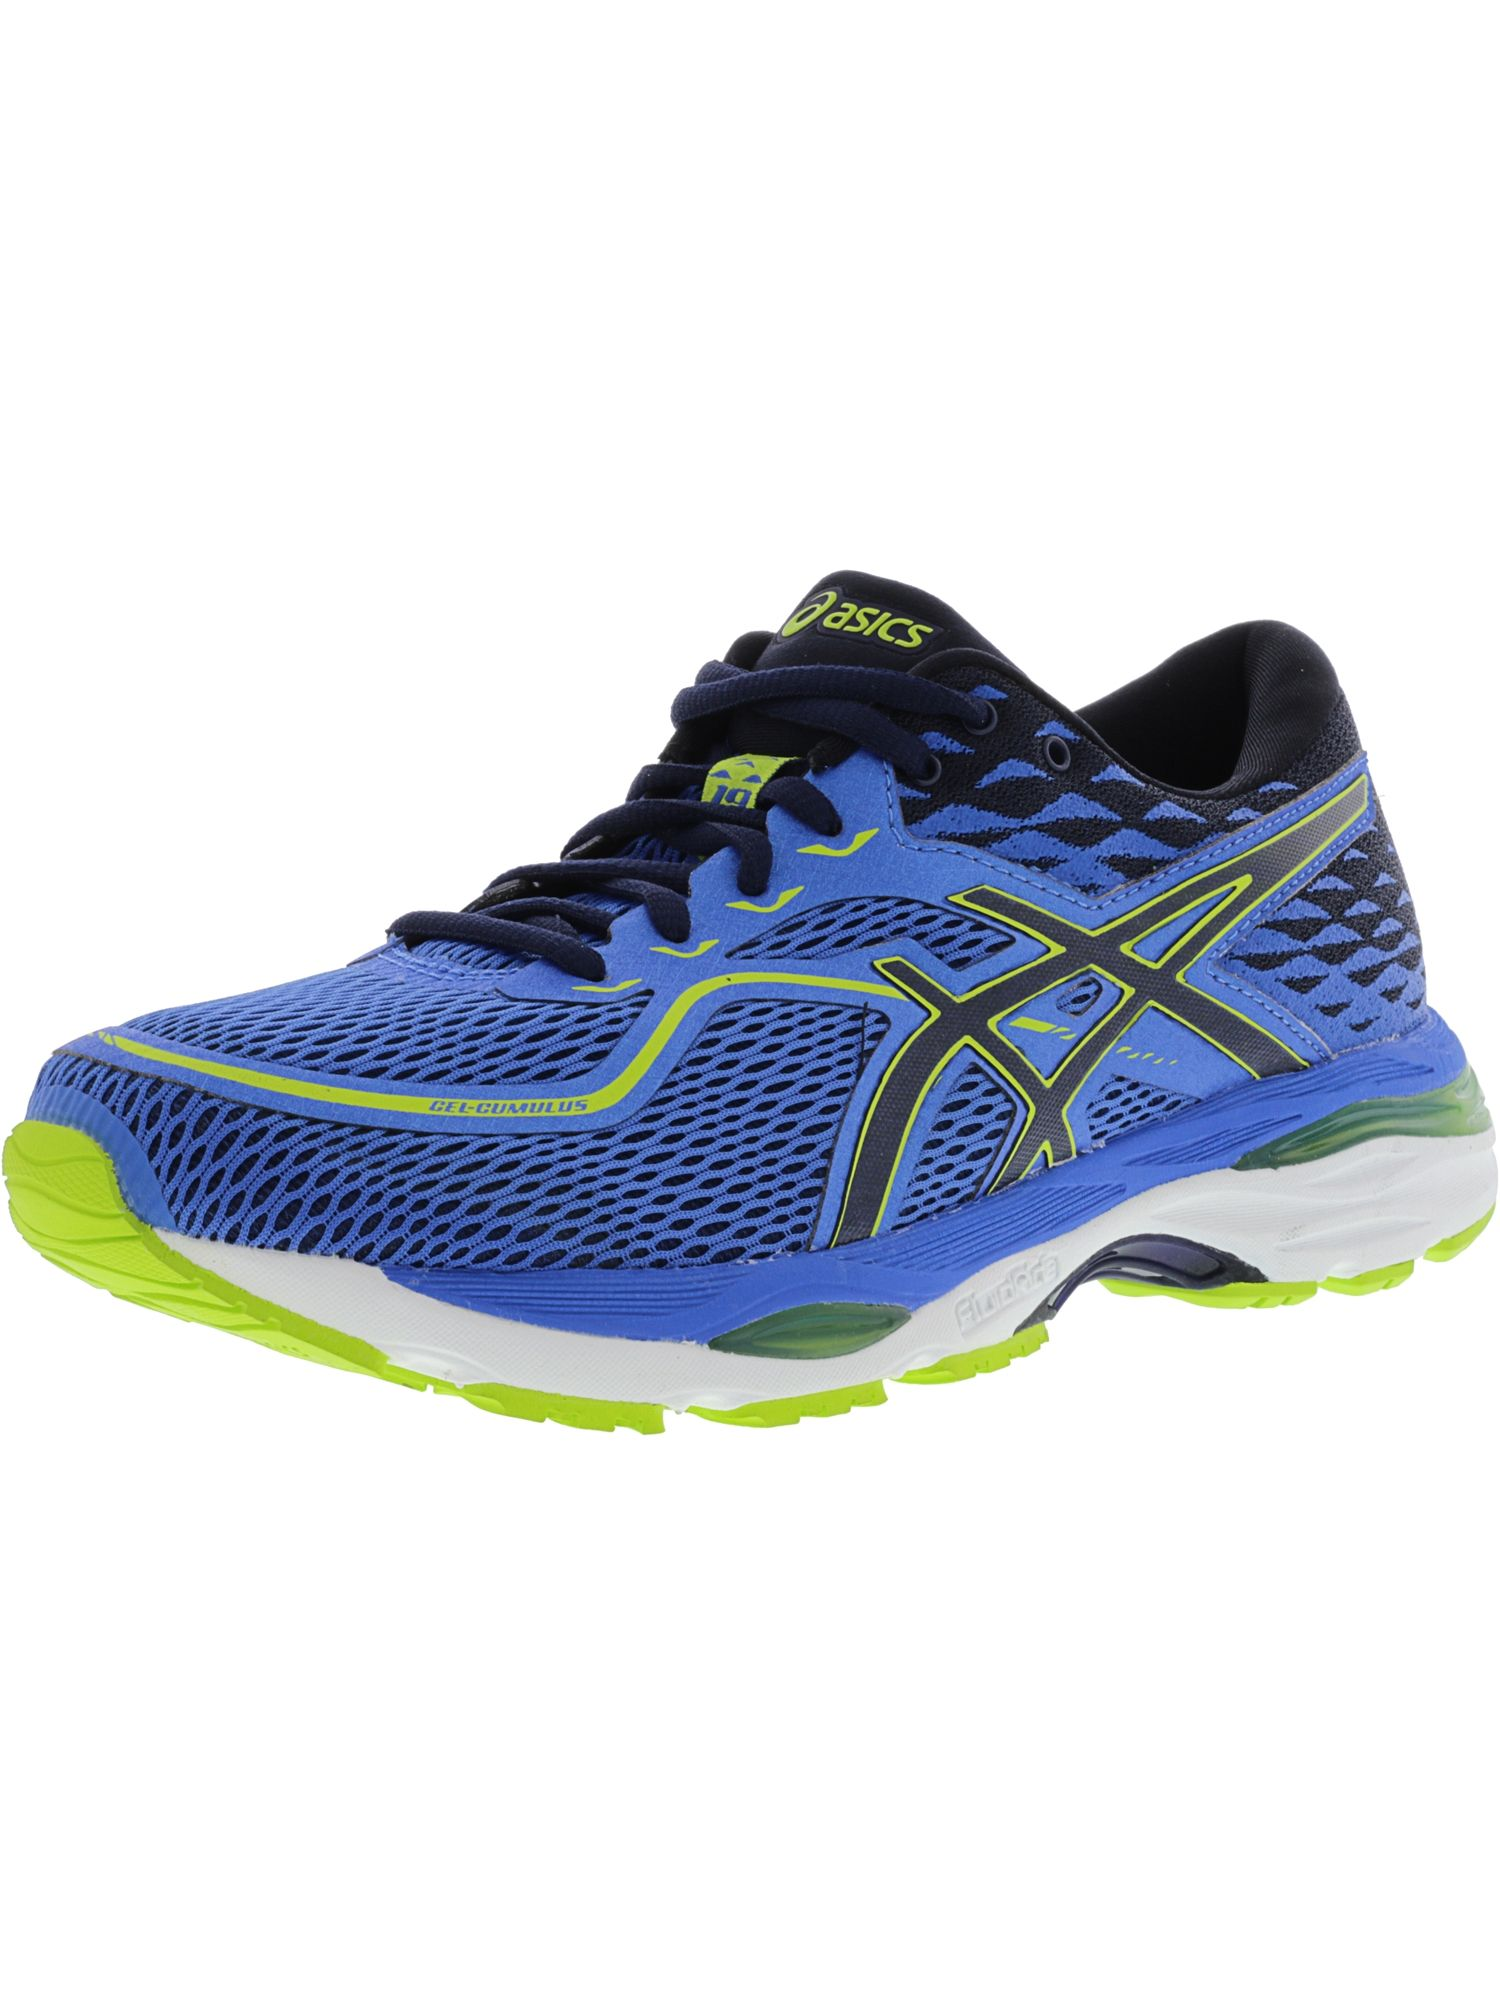 6a3a8a6c7 ASICS ASICS MEN S GEL-CUMULUS 19 LOW TOP TENNIS SHOE.  asics  shoes ...